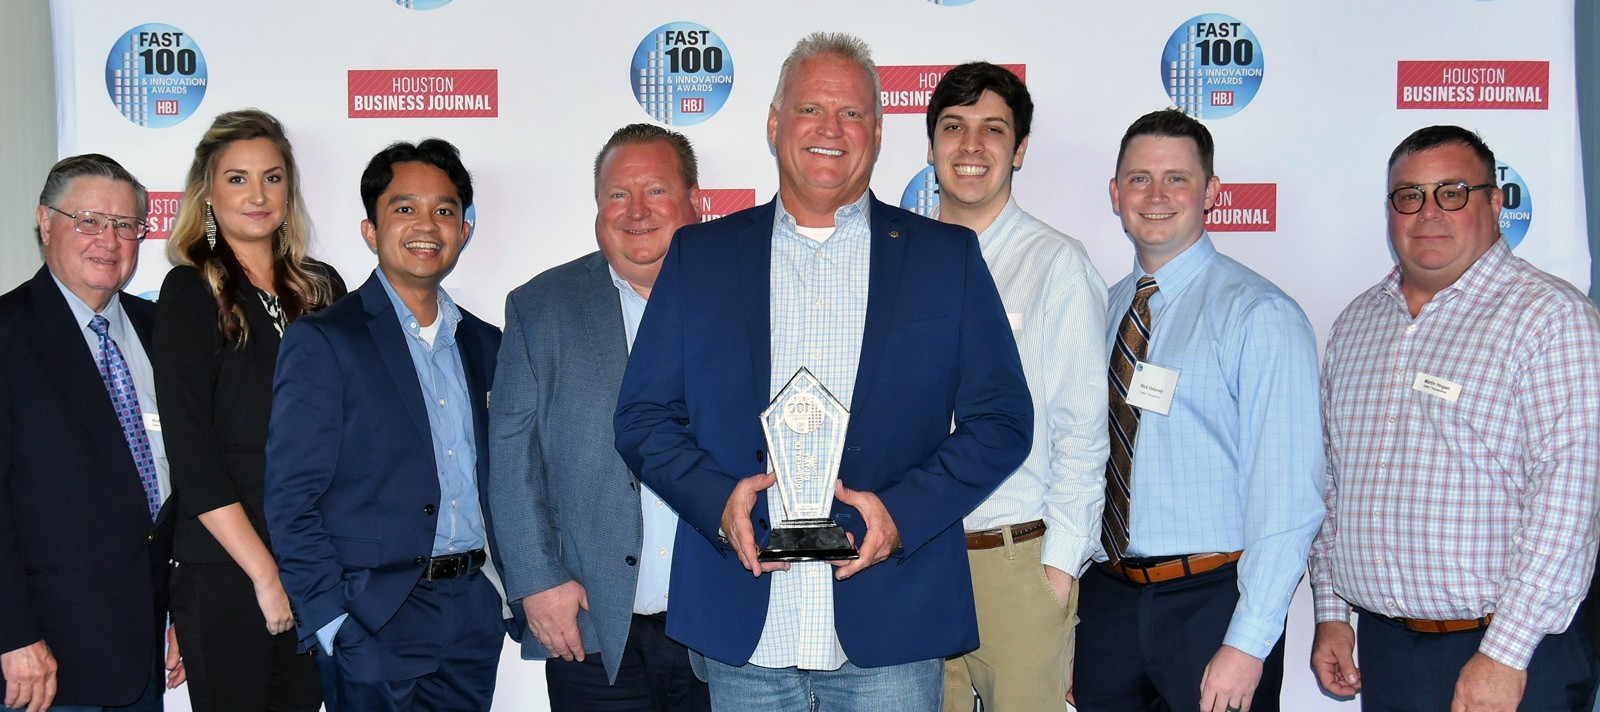 Delta T Equipment team presented with 2021 HBJ Fast 100 award